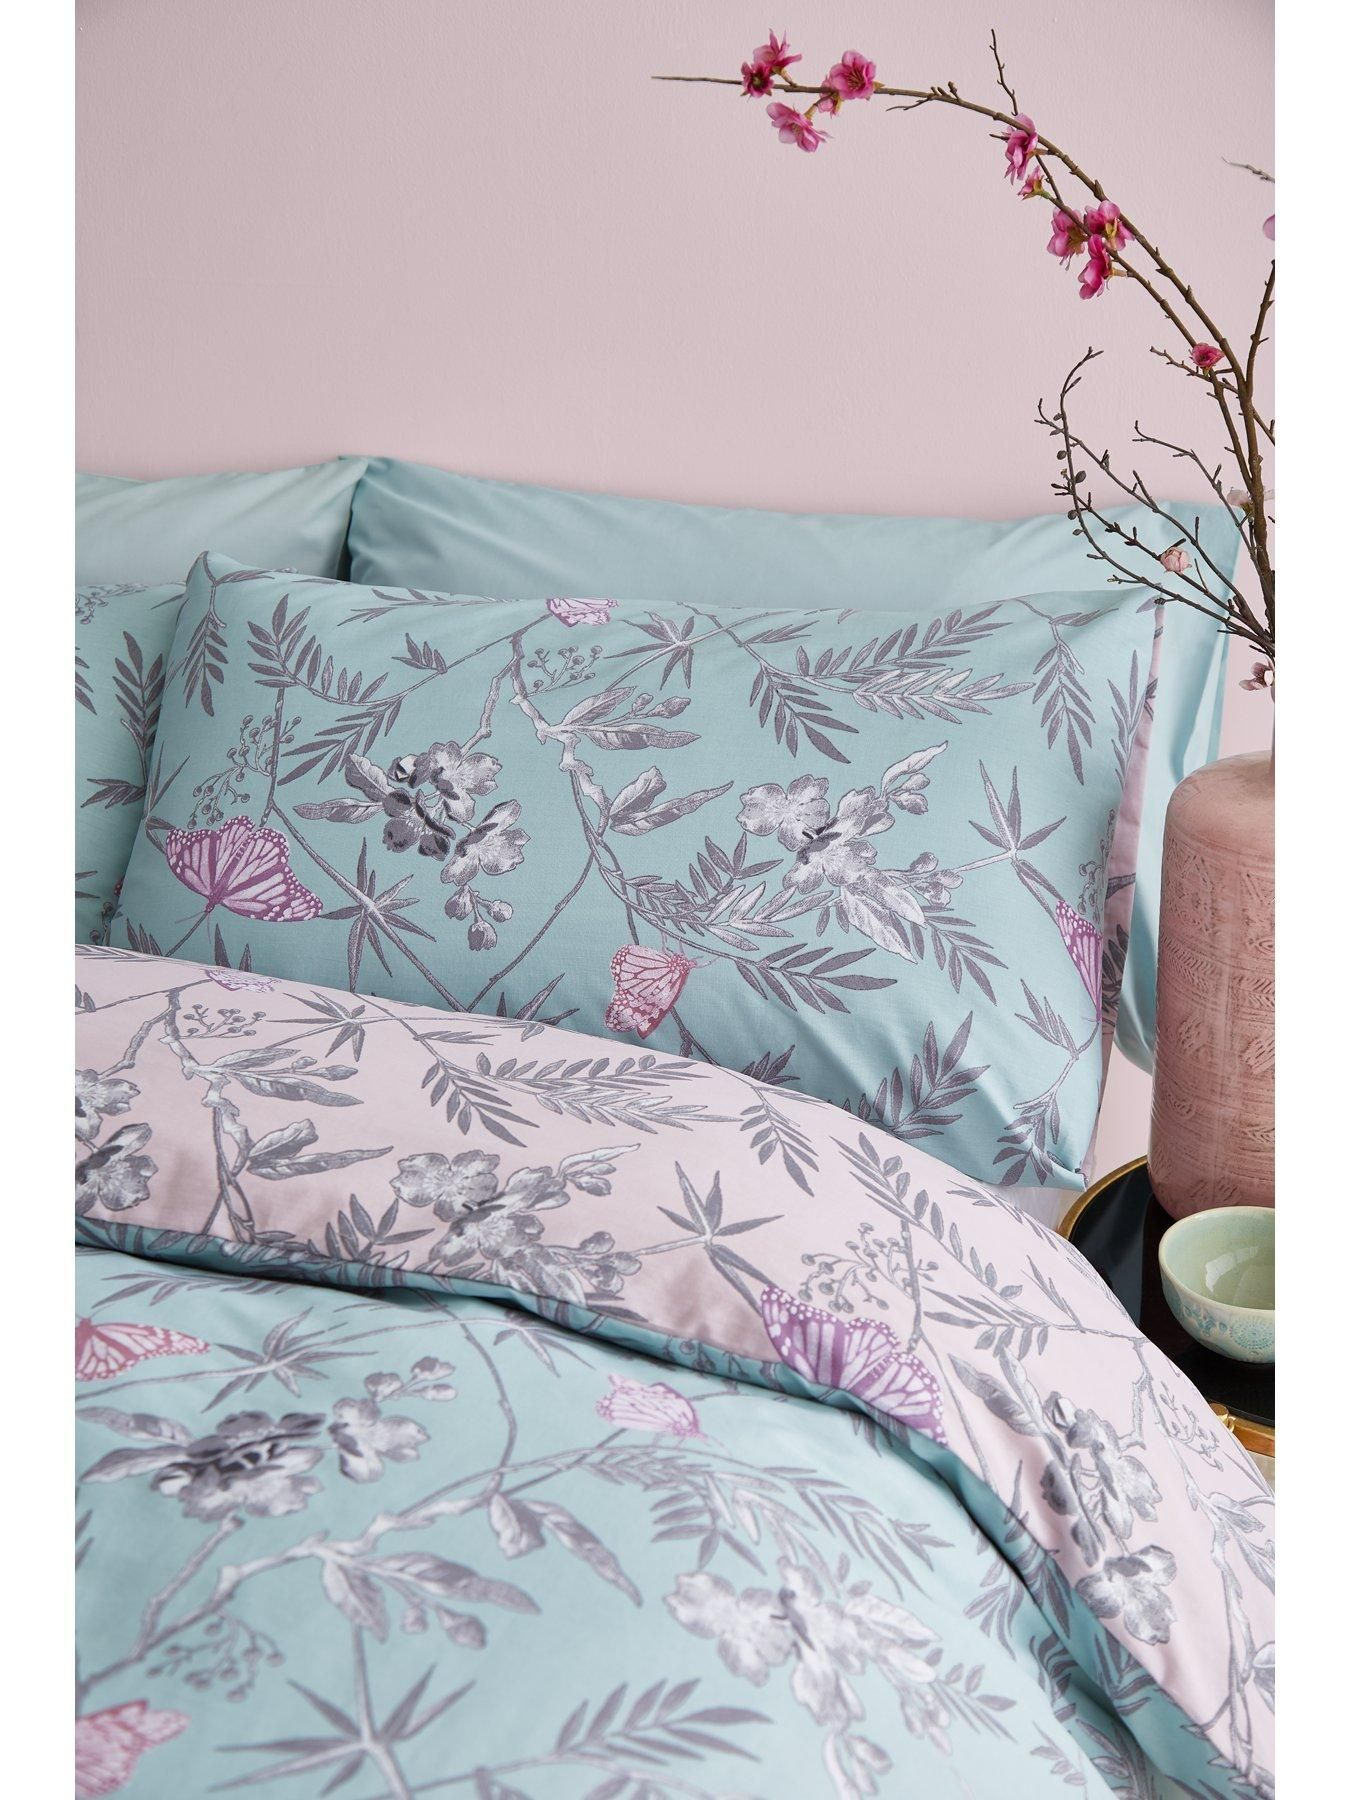 Littlewoods Ireland Online Shopping Fashion & Homeware